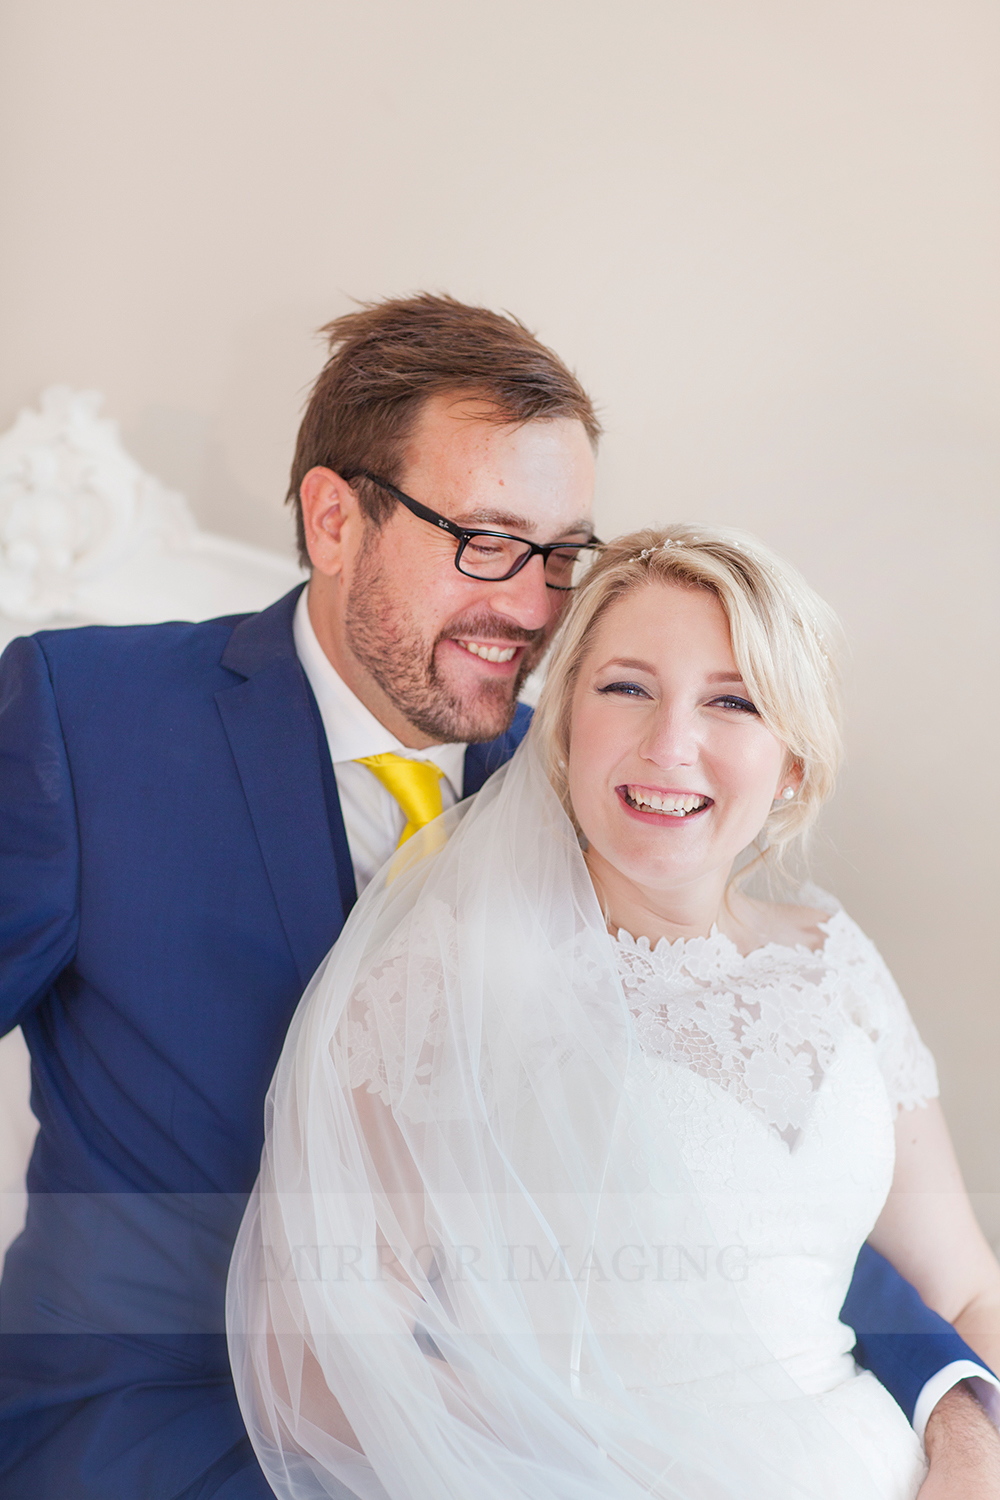 notts wedding photographer 42.jpg